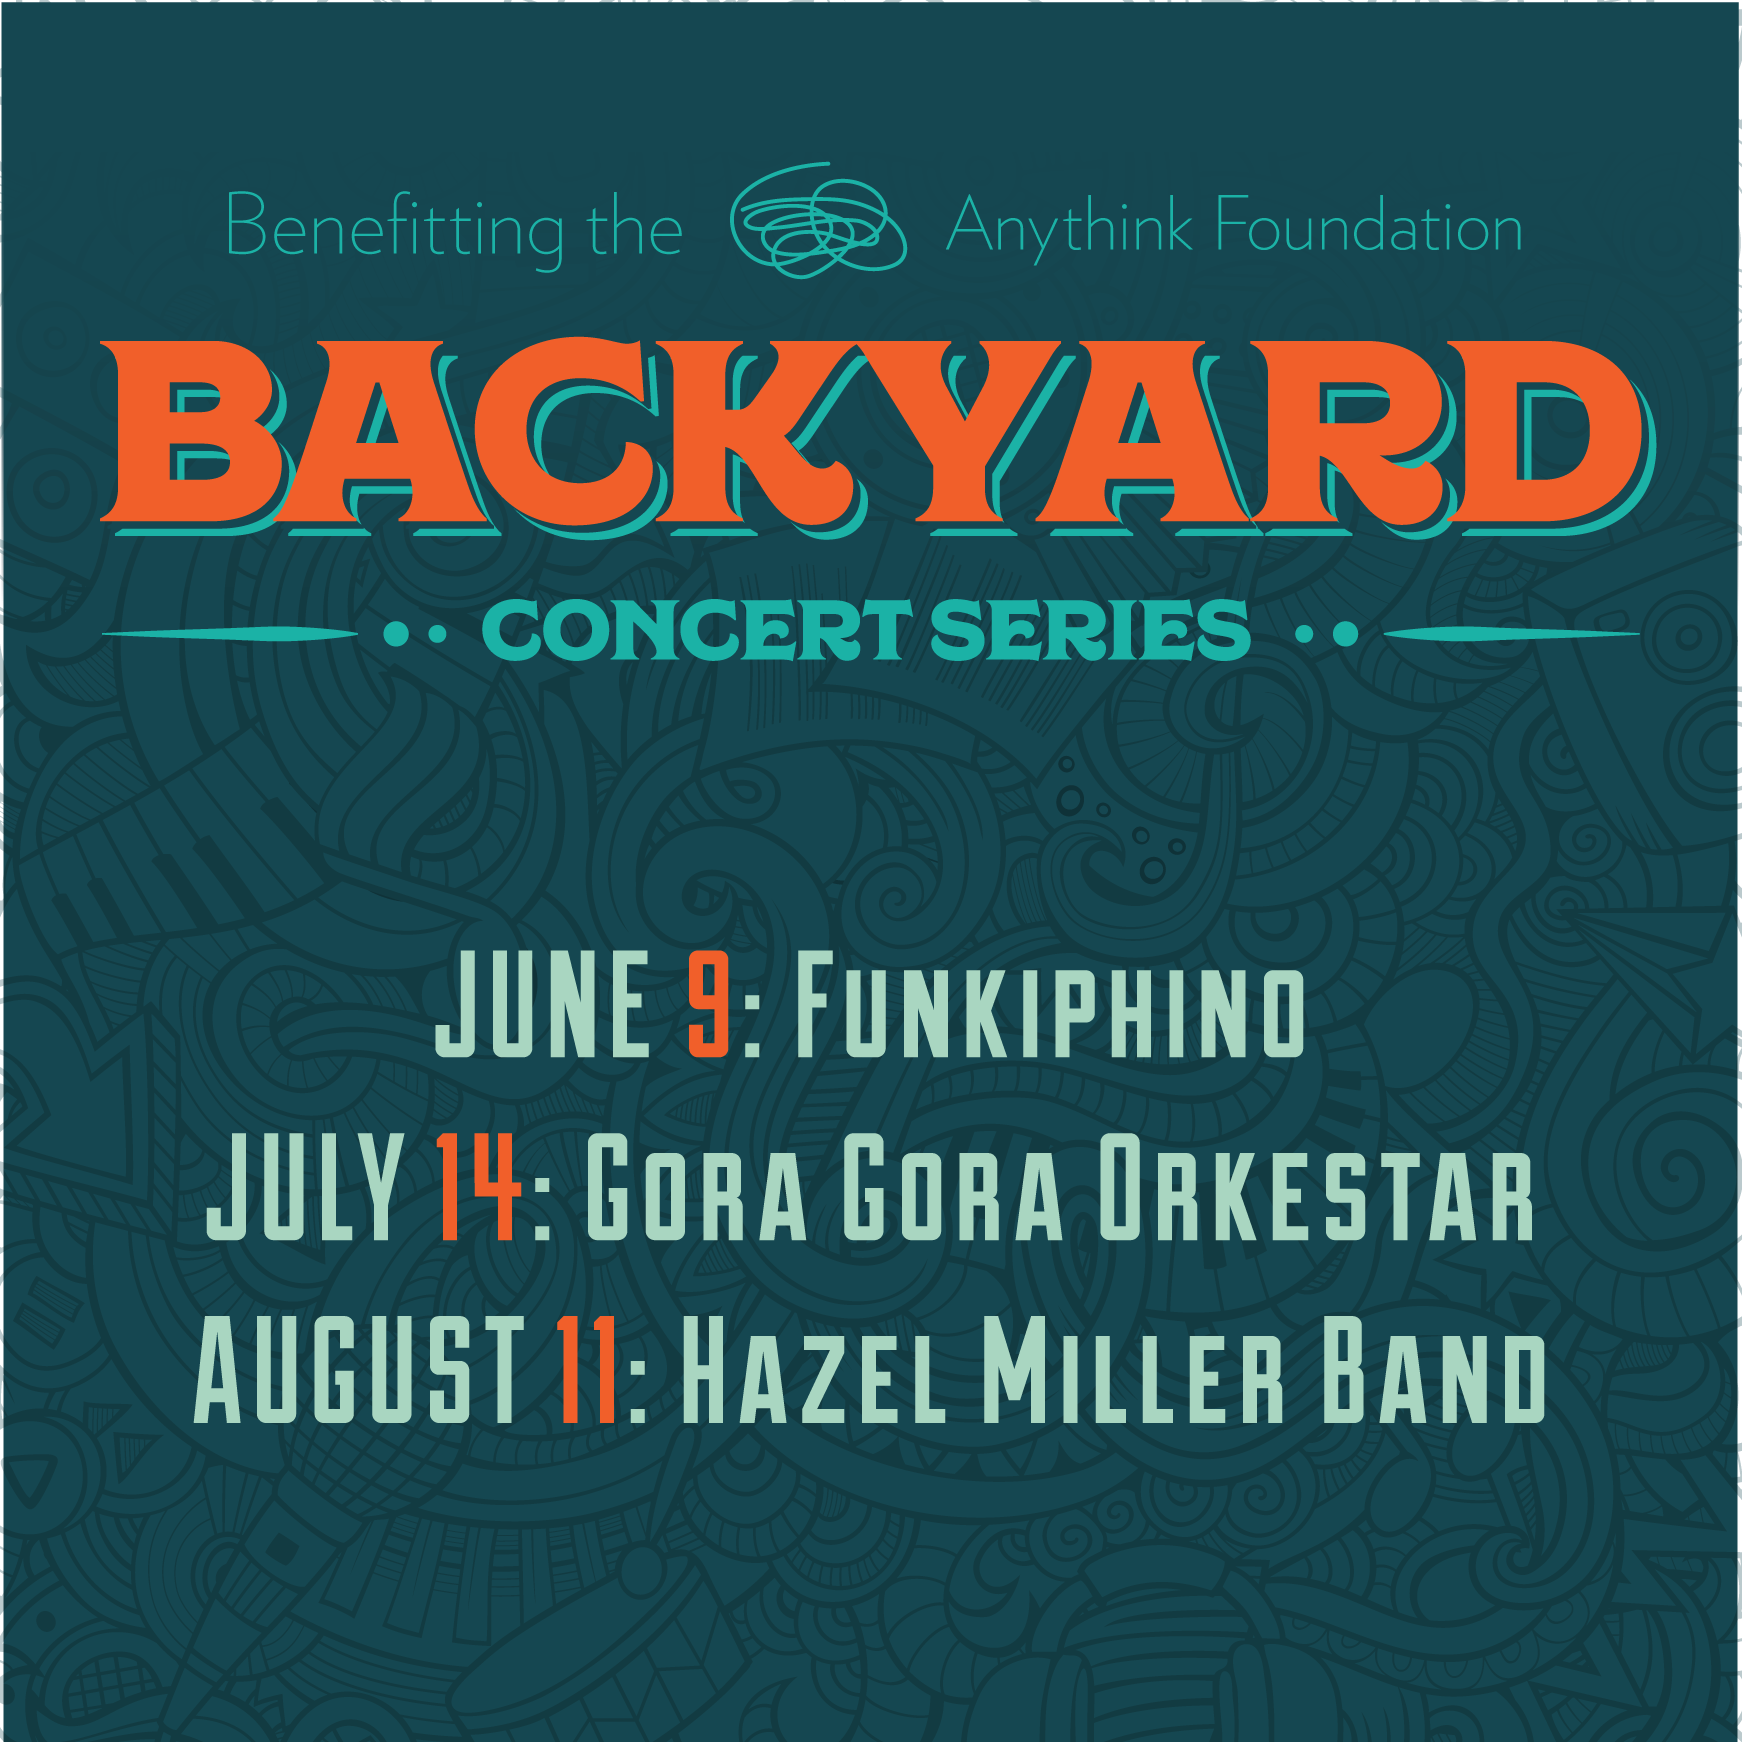 anythink u0027s 2017 backyard concert series lineup announced